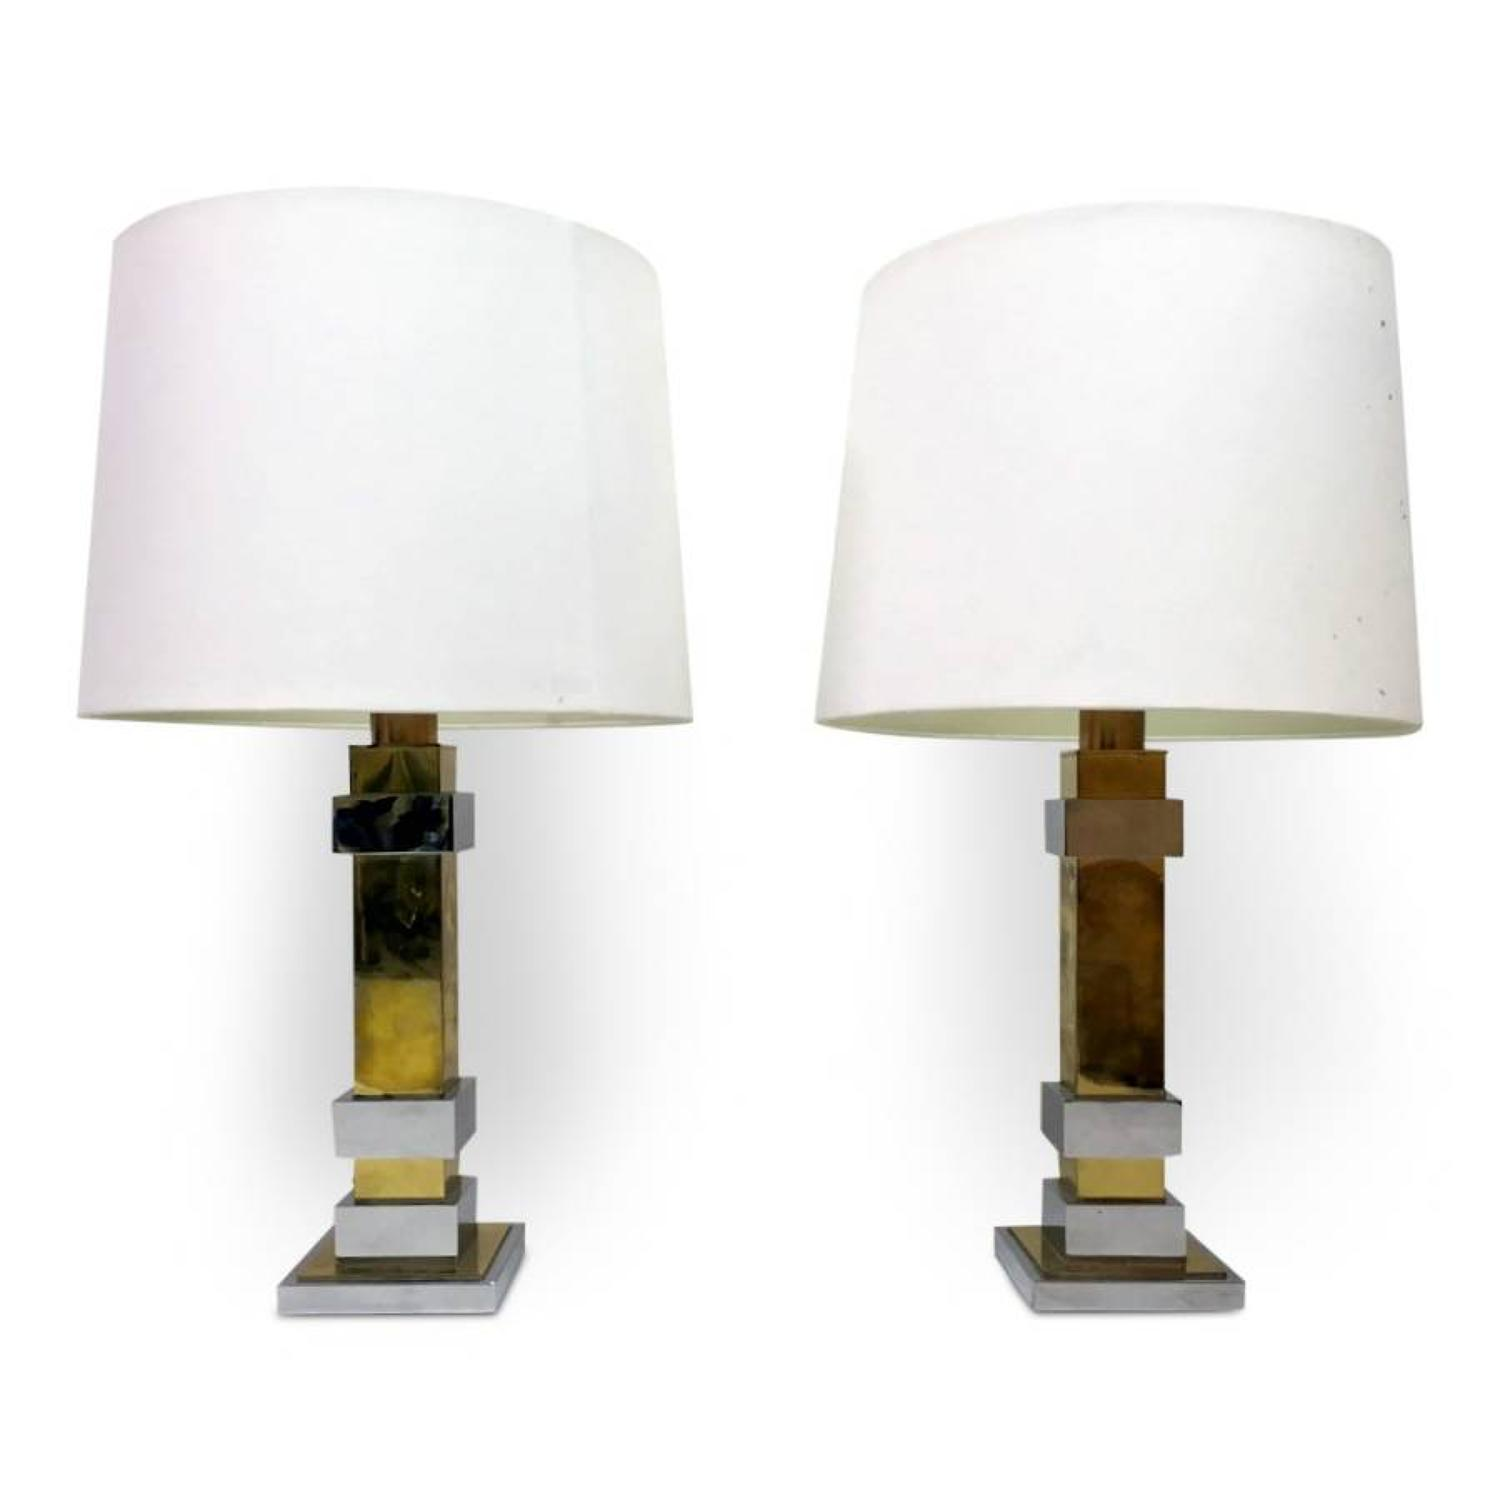 A pair of 1970s chrome and brass table lamps